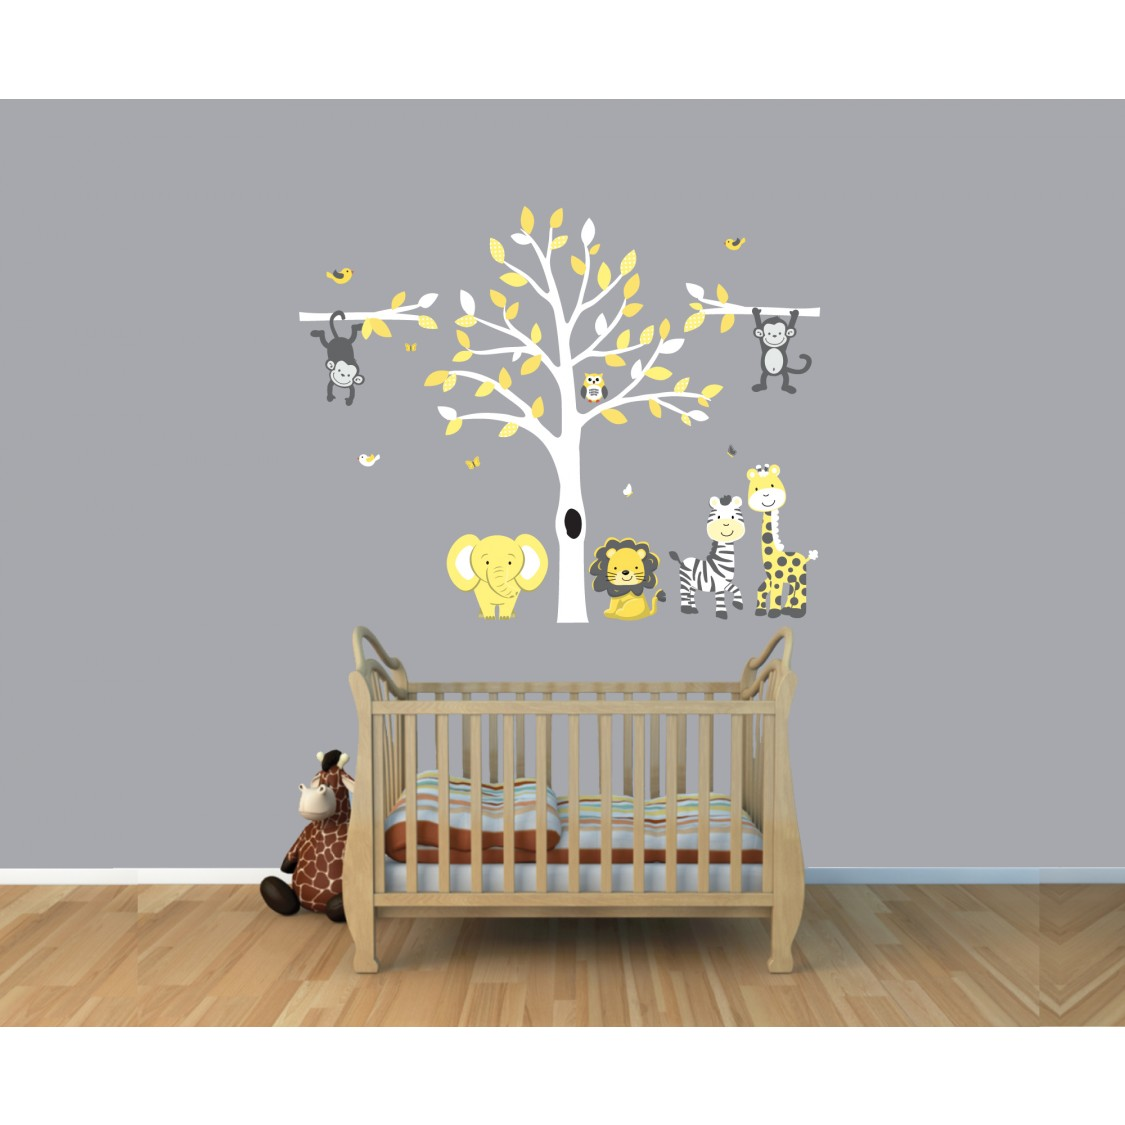 Yellow & Gray Jungle Tree Wall Decal With Monkey Wall Stickers For Nursery or Baby Room